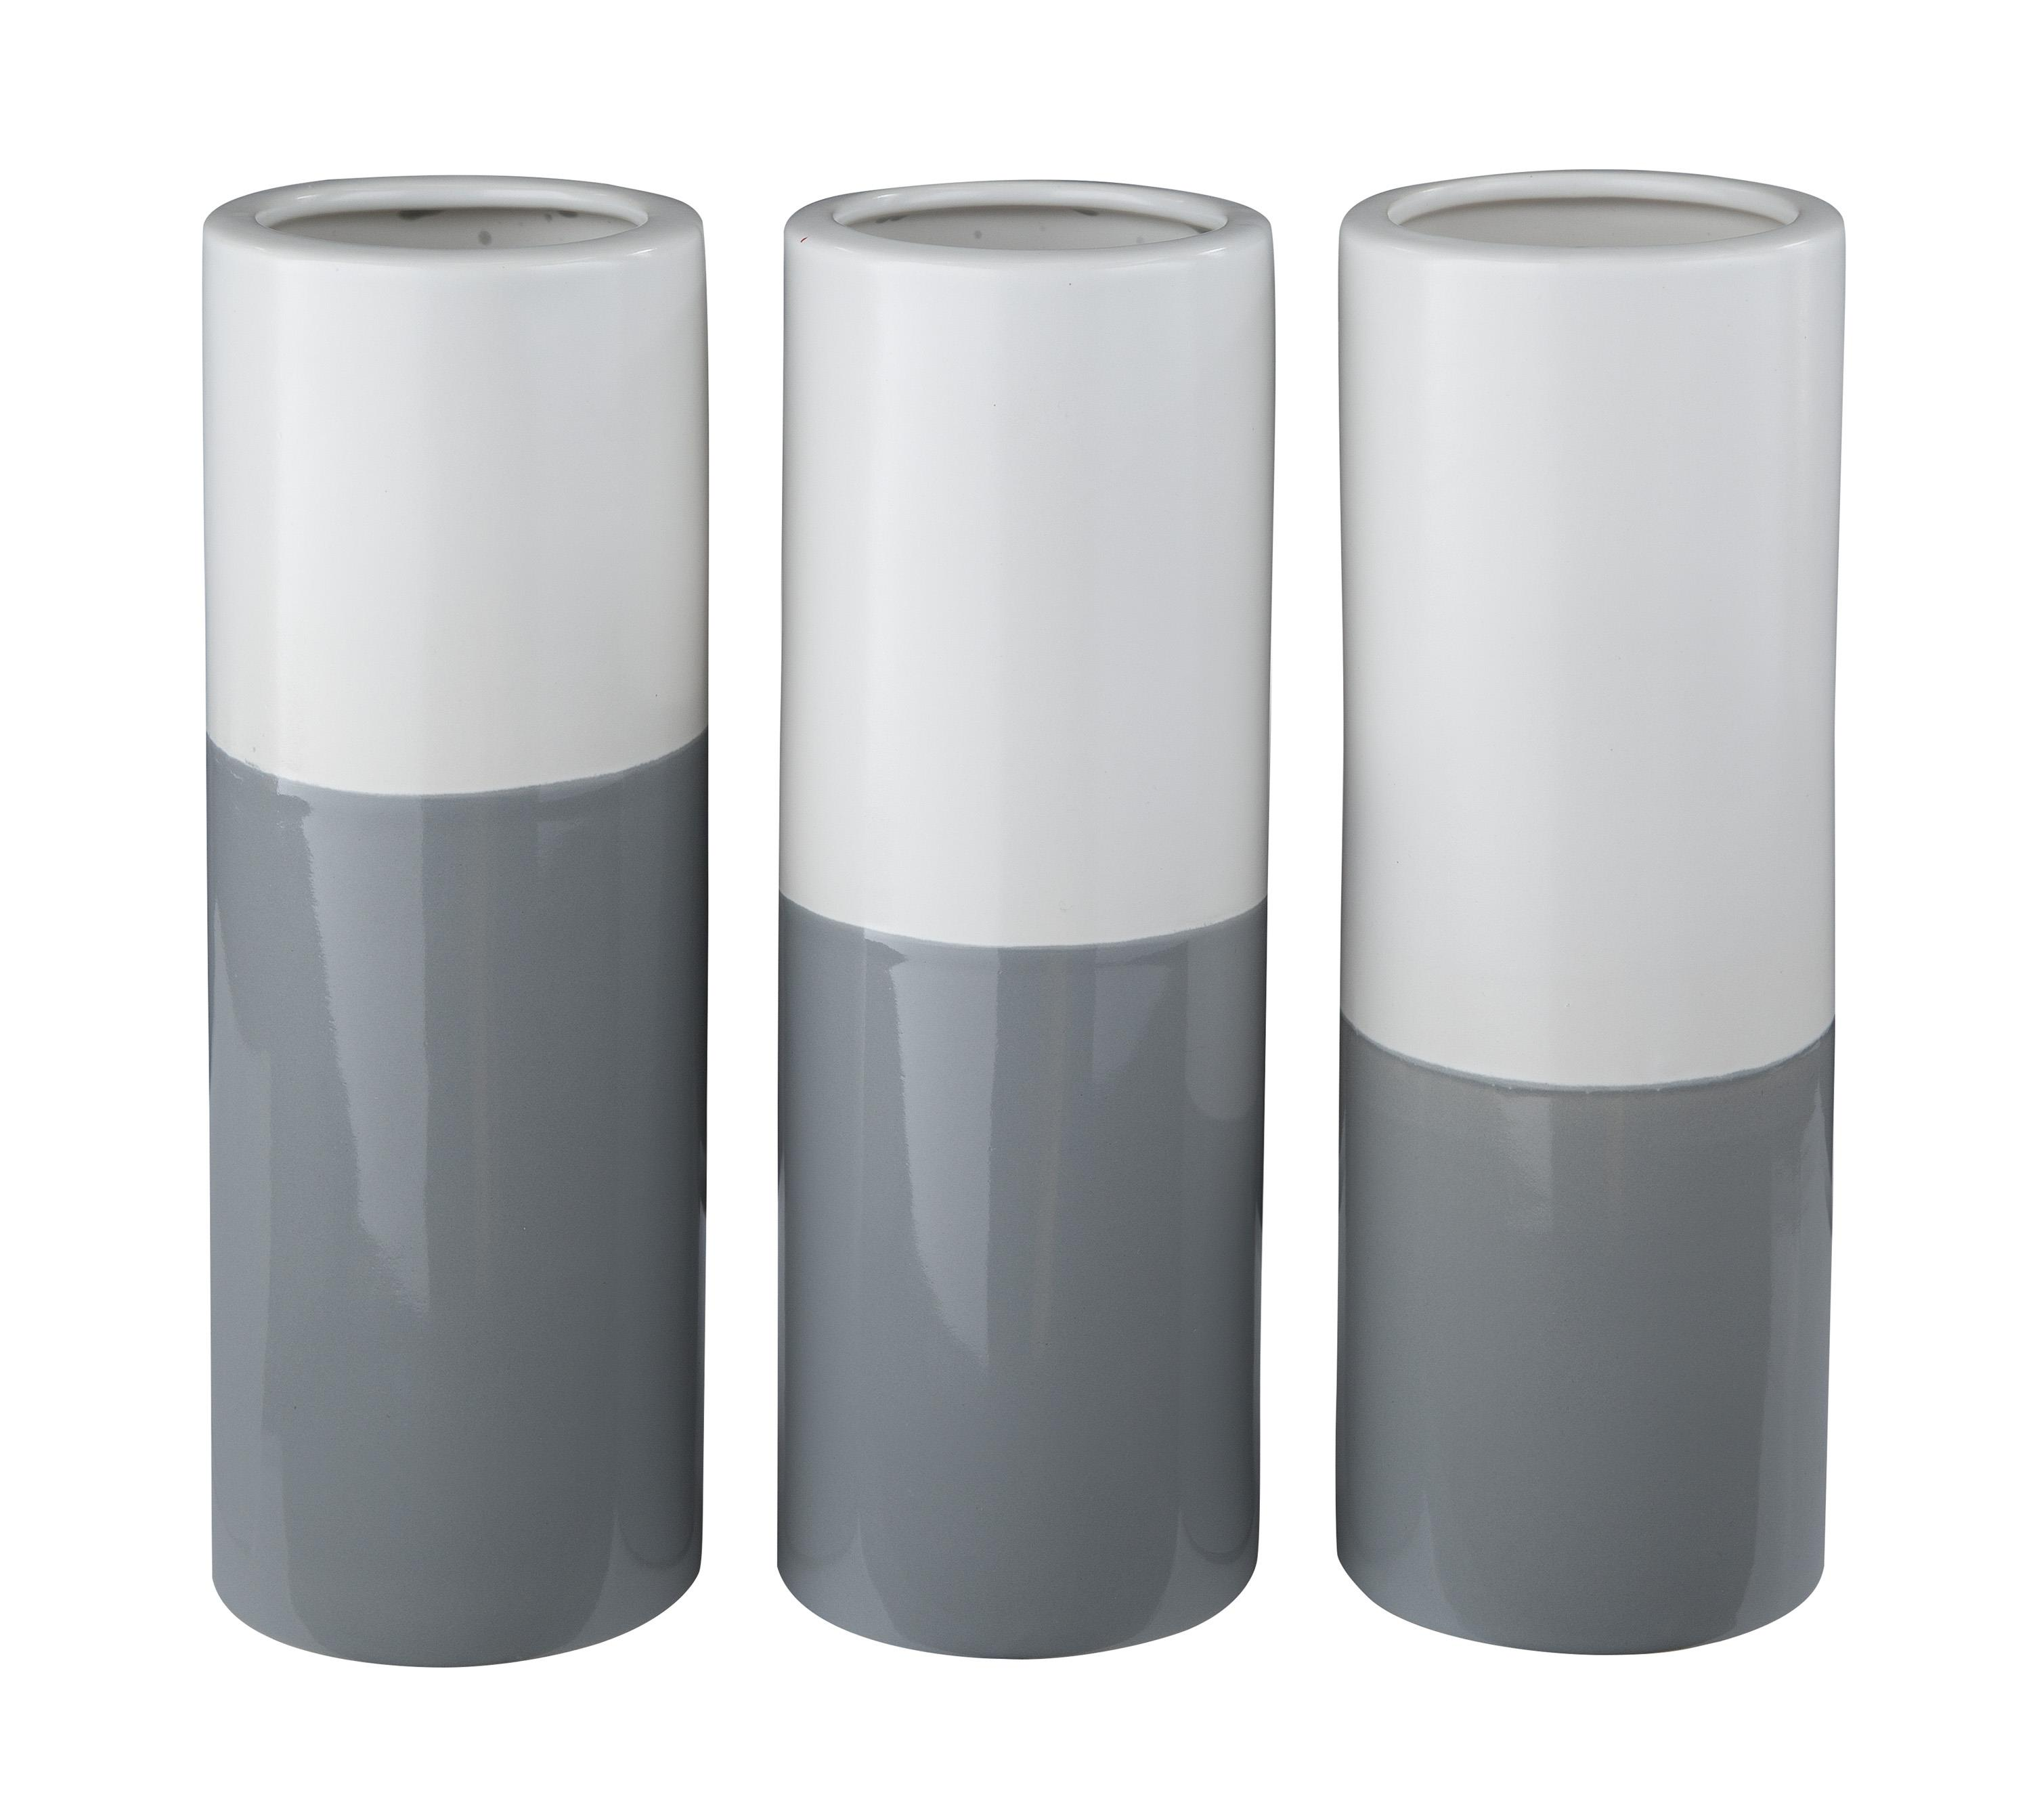 Signature Design by Ashley Furniture Accents Dalal Gray/White Vases (Set of 3) - Item Number: A2000165V